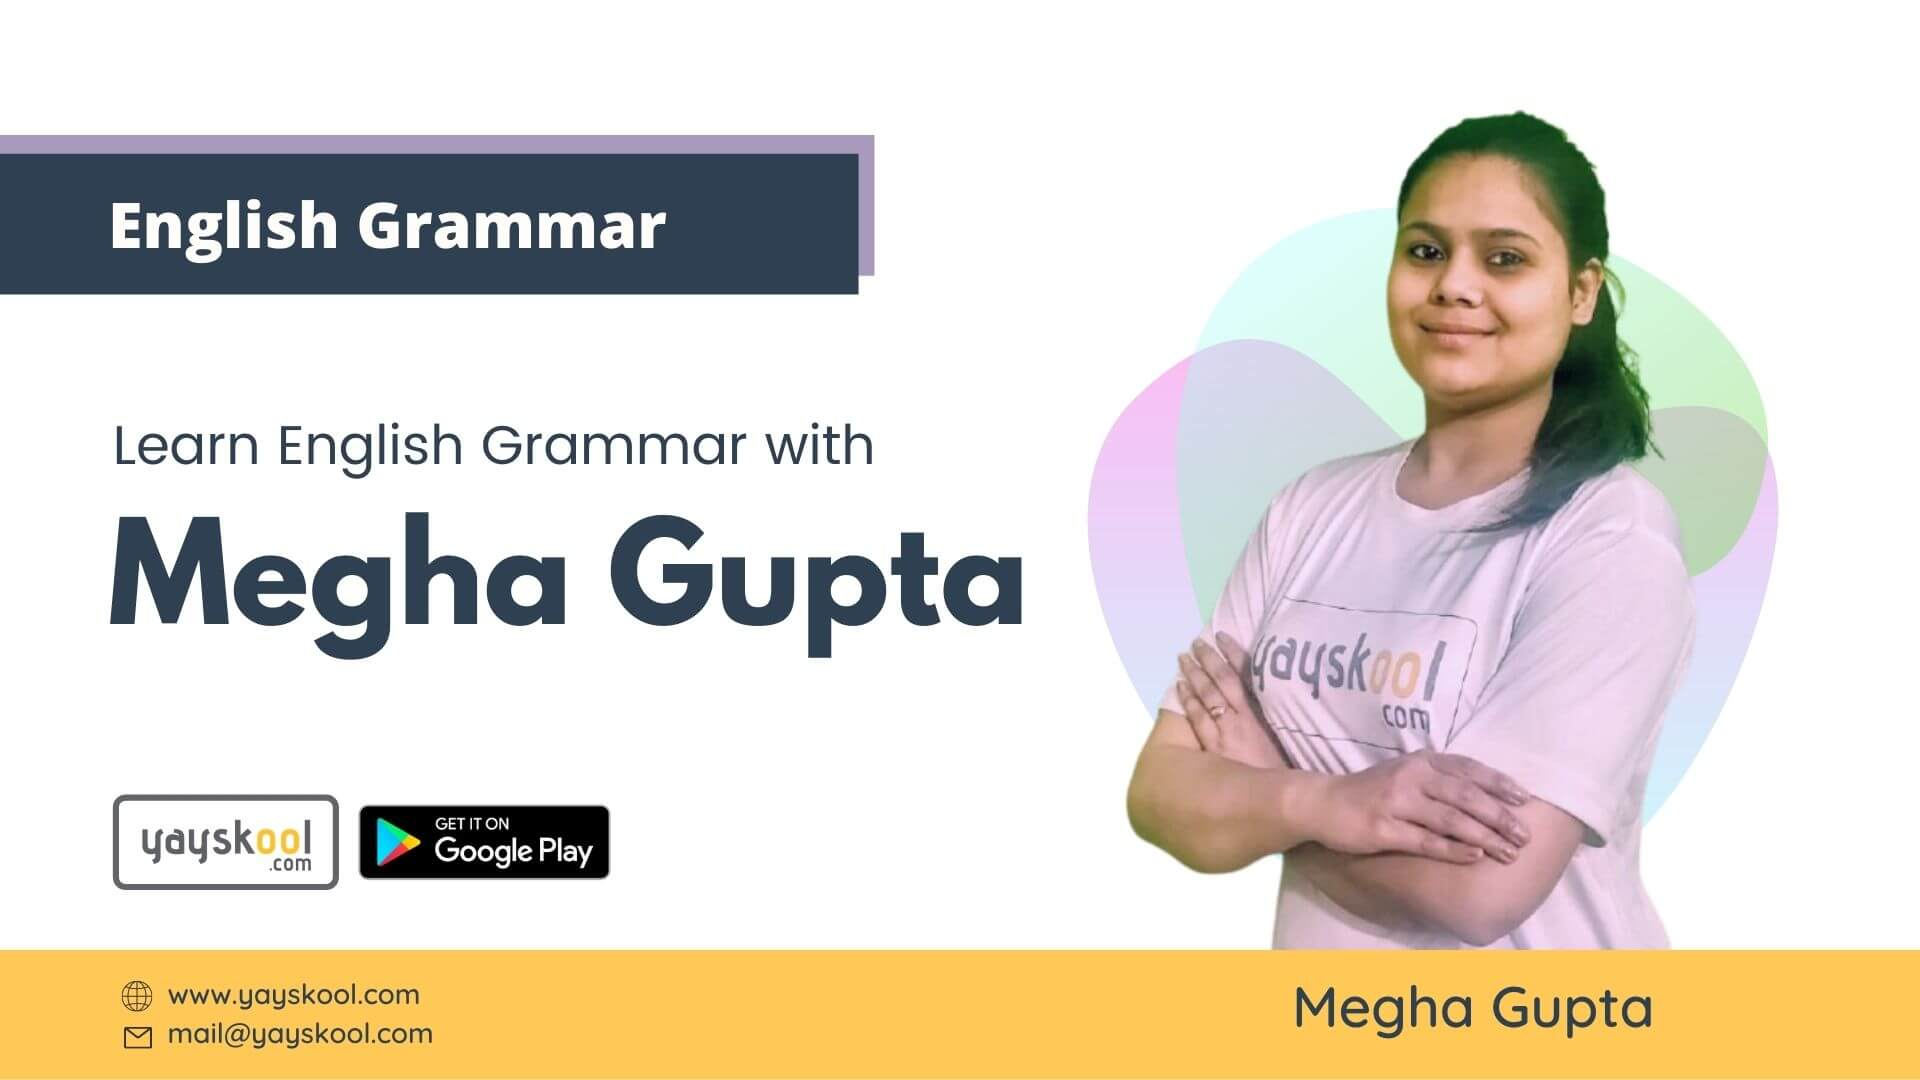 learn-english-grammar-megha-gupta